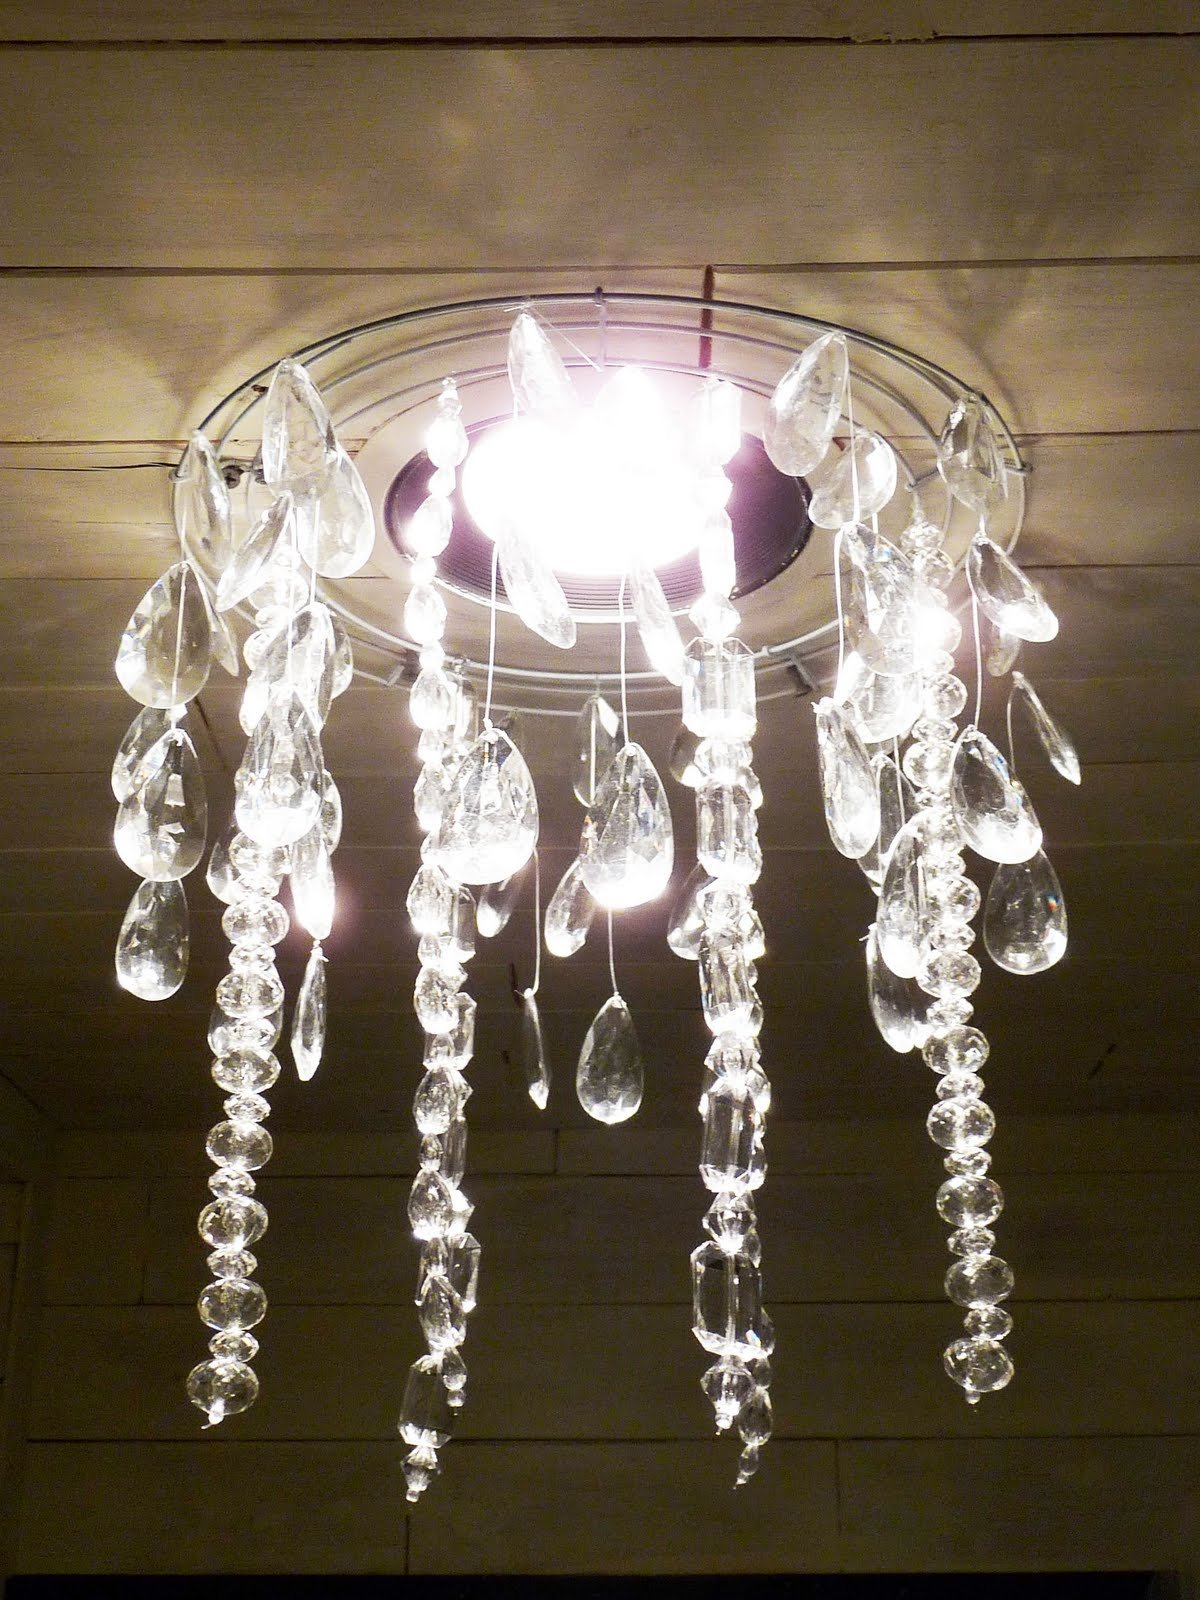 The Happy Homebodies Tutorial Diy Faux Crystal Chandelier Inside Faux Crystal Chandeliers (View 4 of 25)